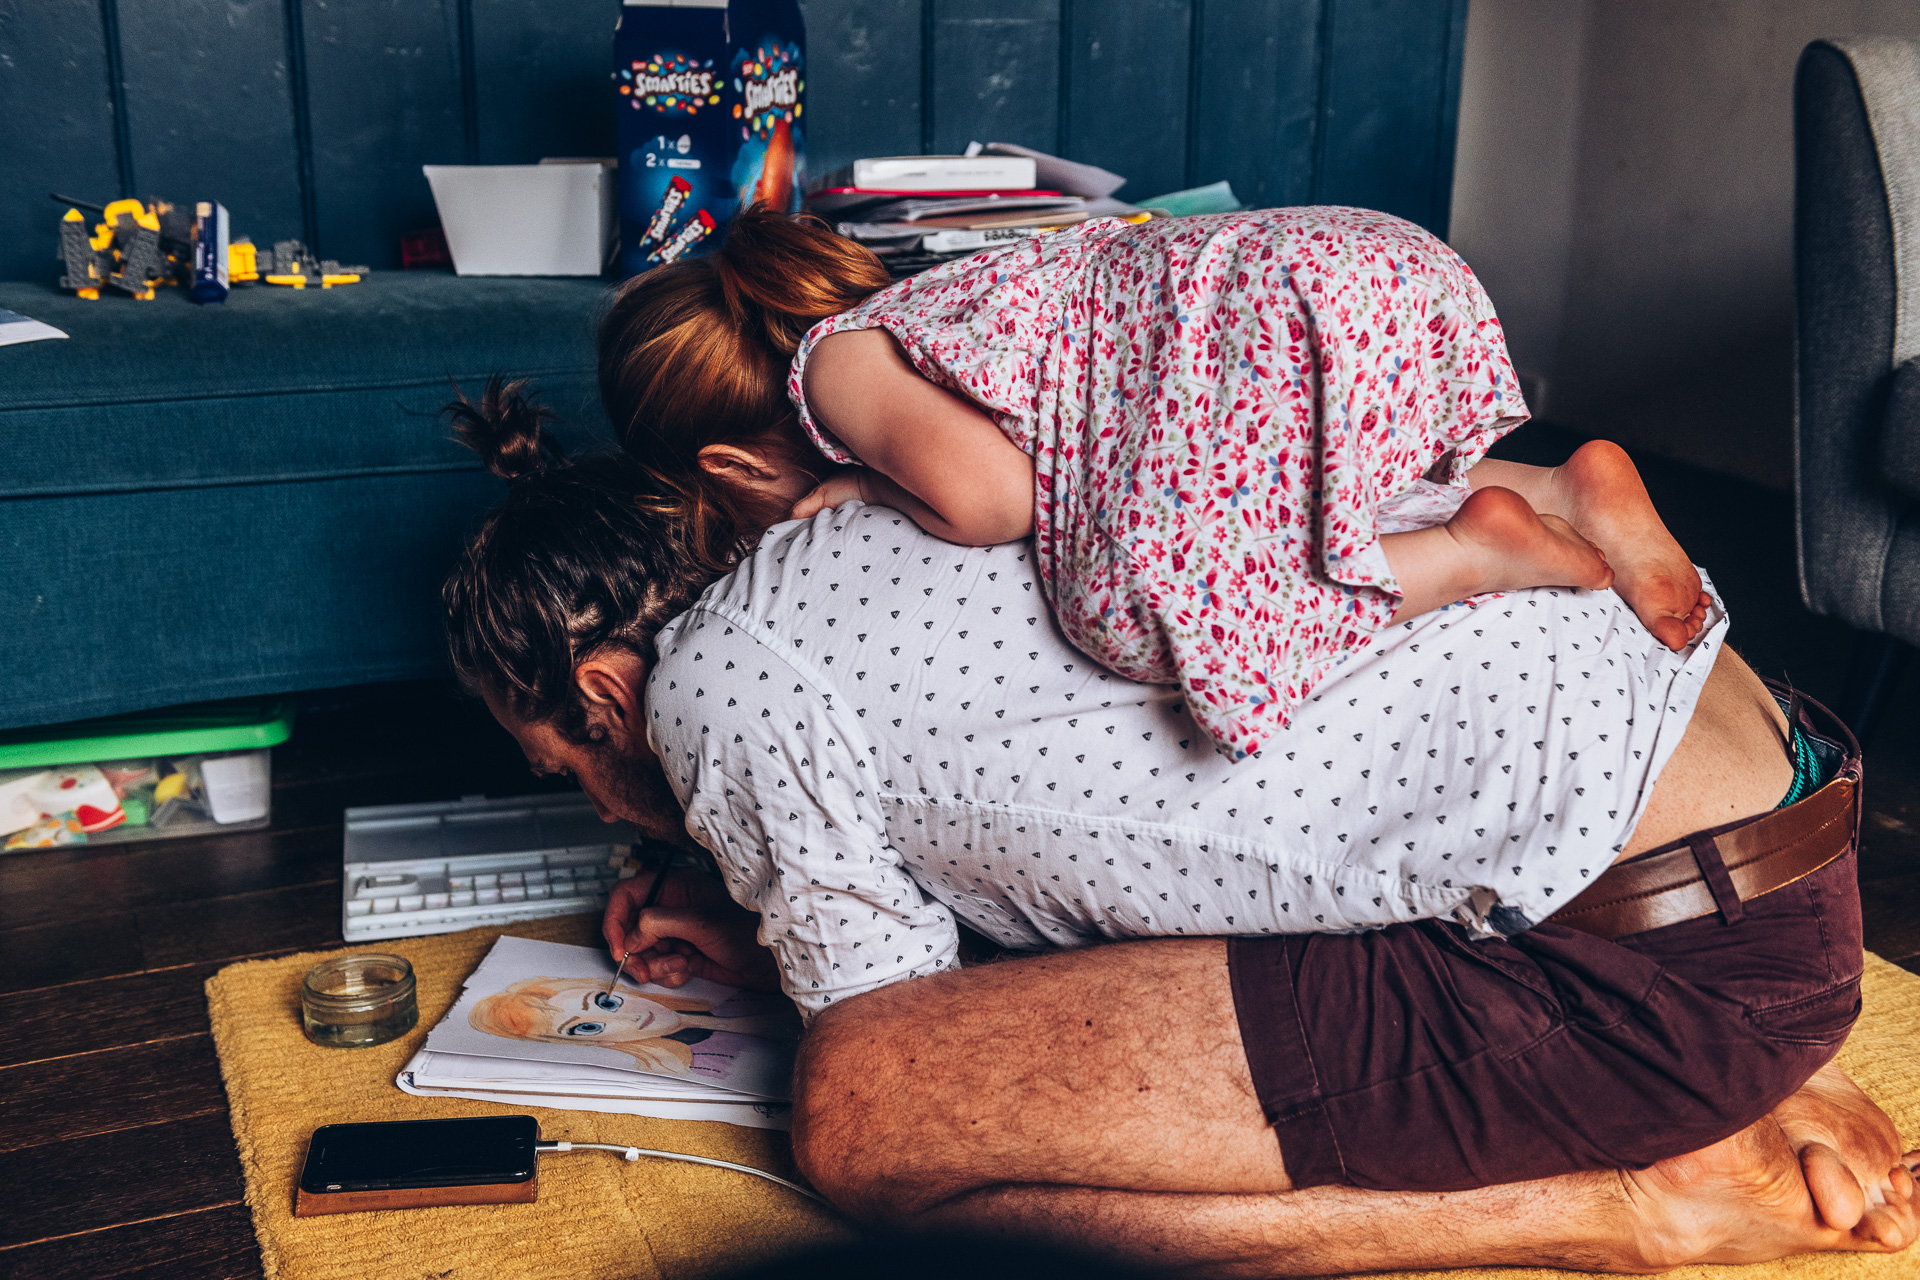 A photography showing family Life during the Covid-19 Lockdown